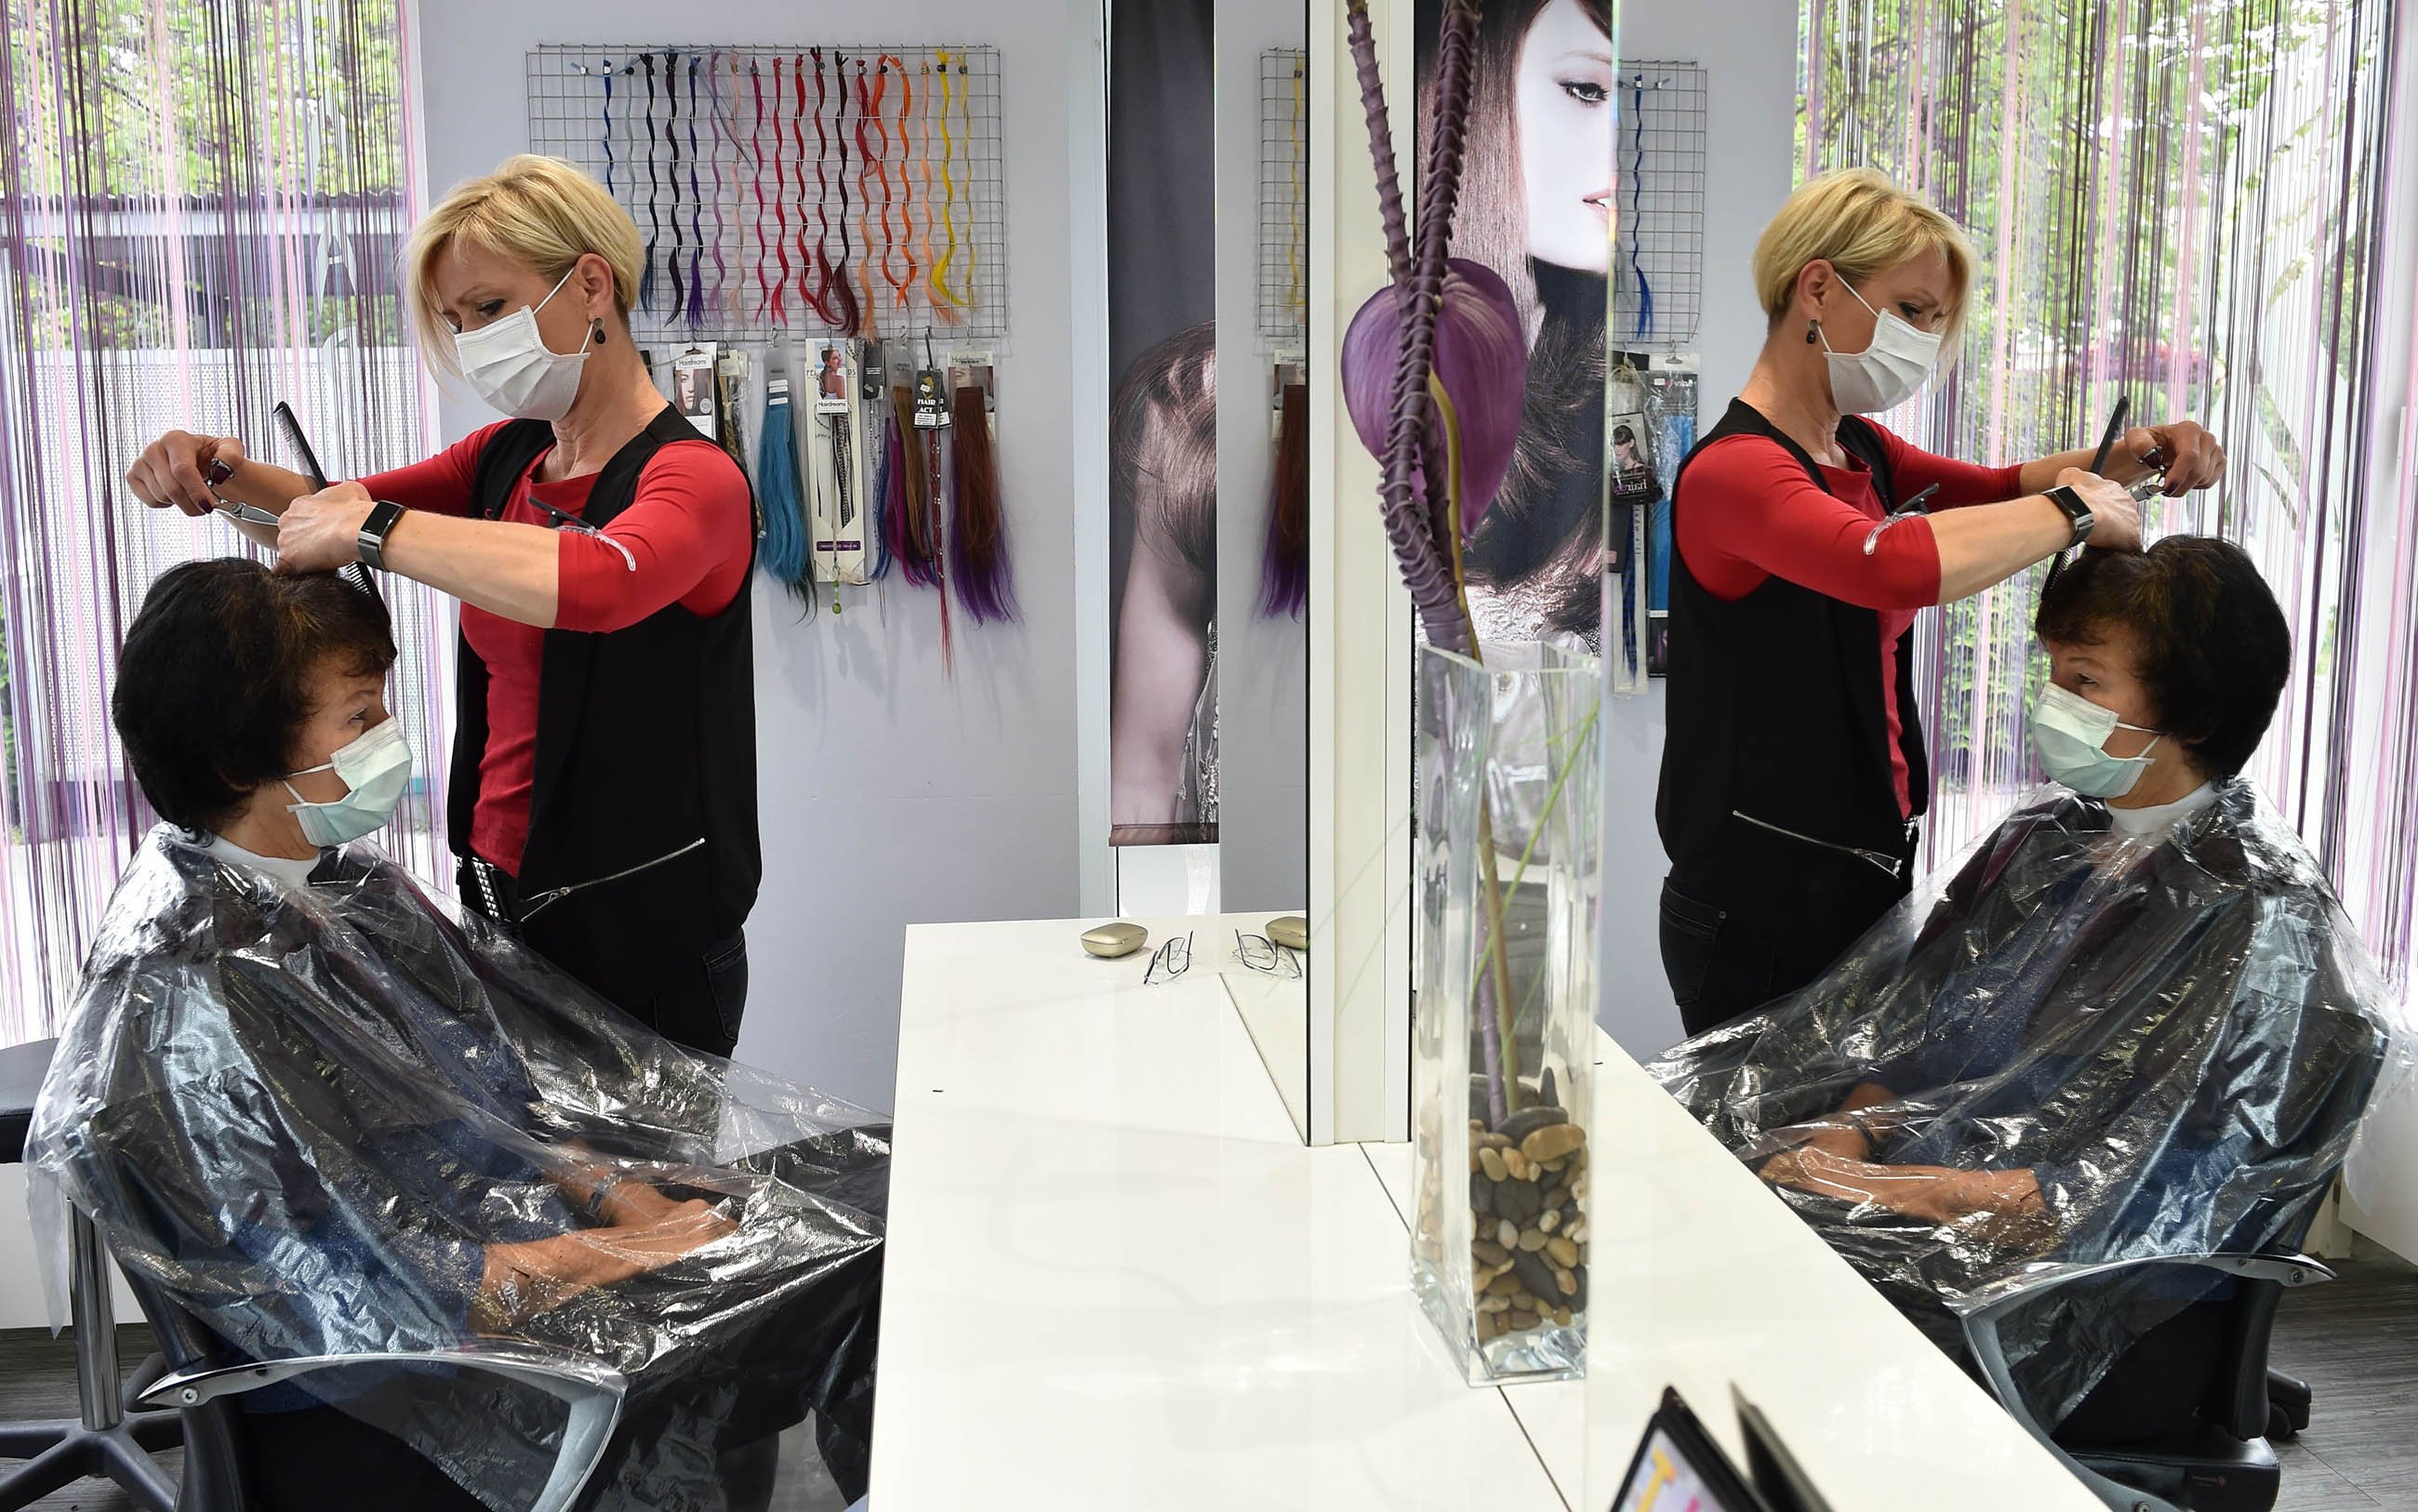 Hairdresser Andrea Macha cuts a customer's hair in her salon in Puchheim near Munich, Germany, during the first day of reopening amid the novel coronavirus pandemic on May 4.